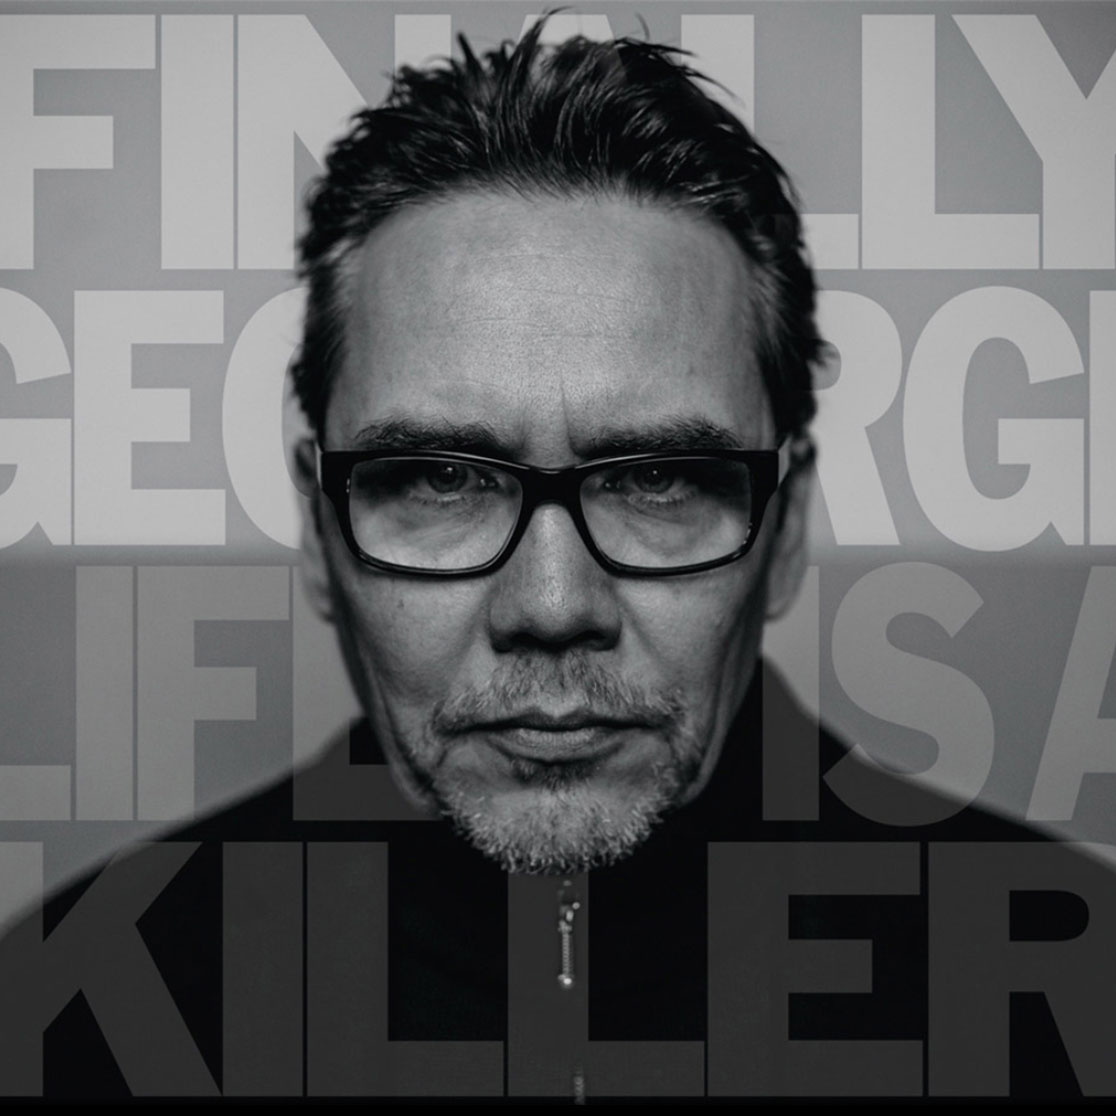 Finally George - Life is a Killer